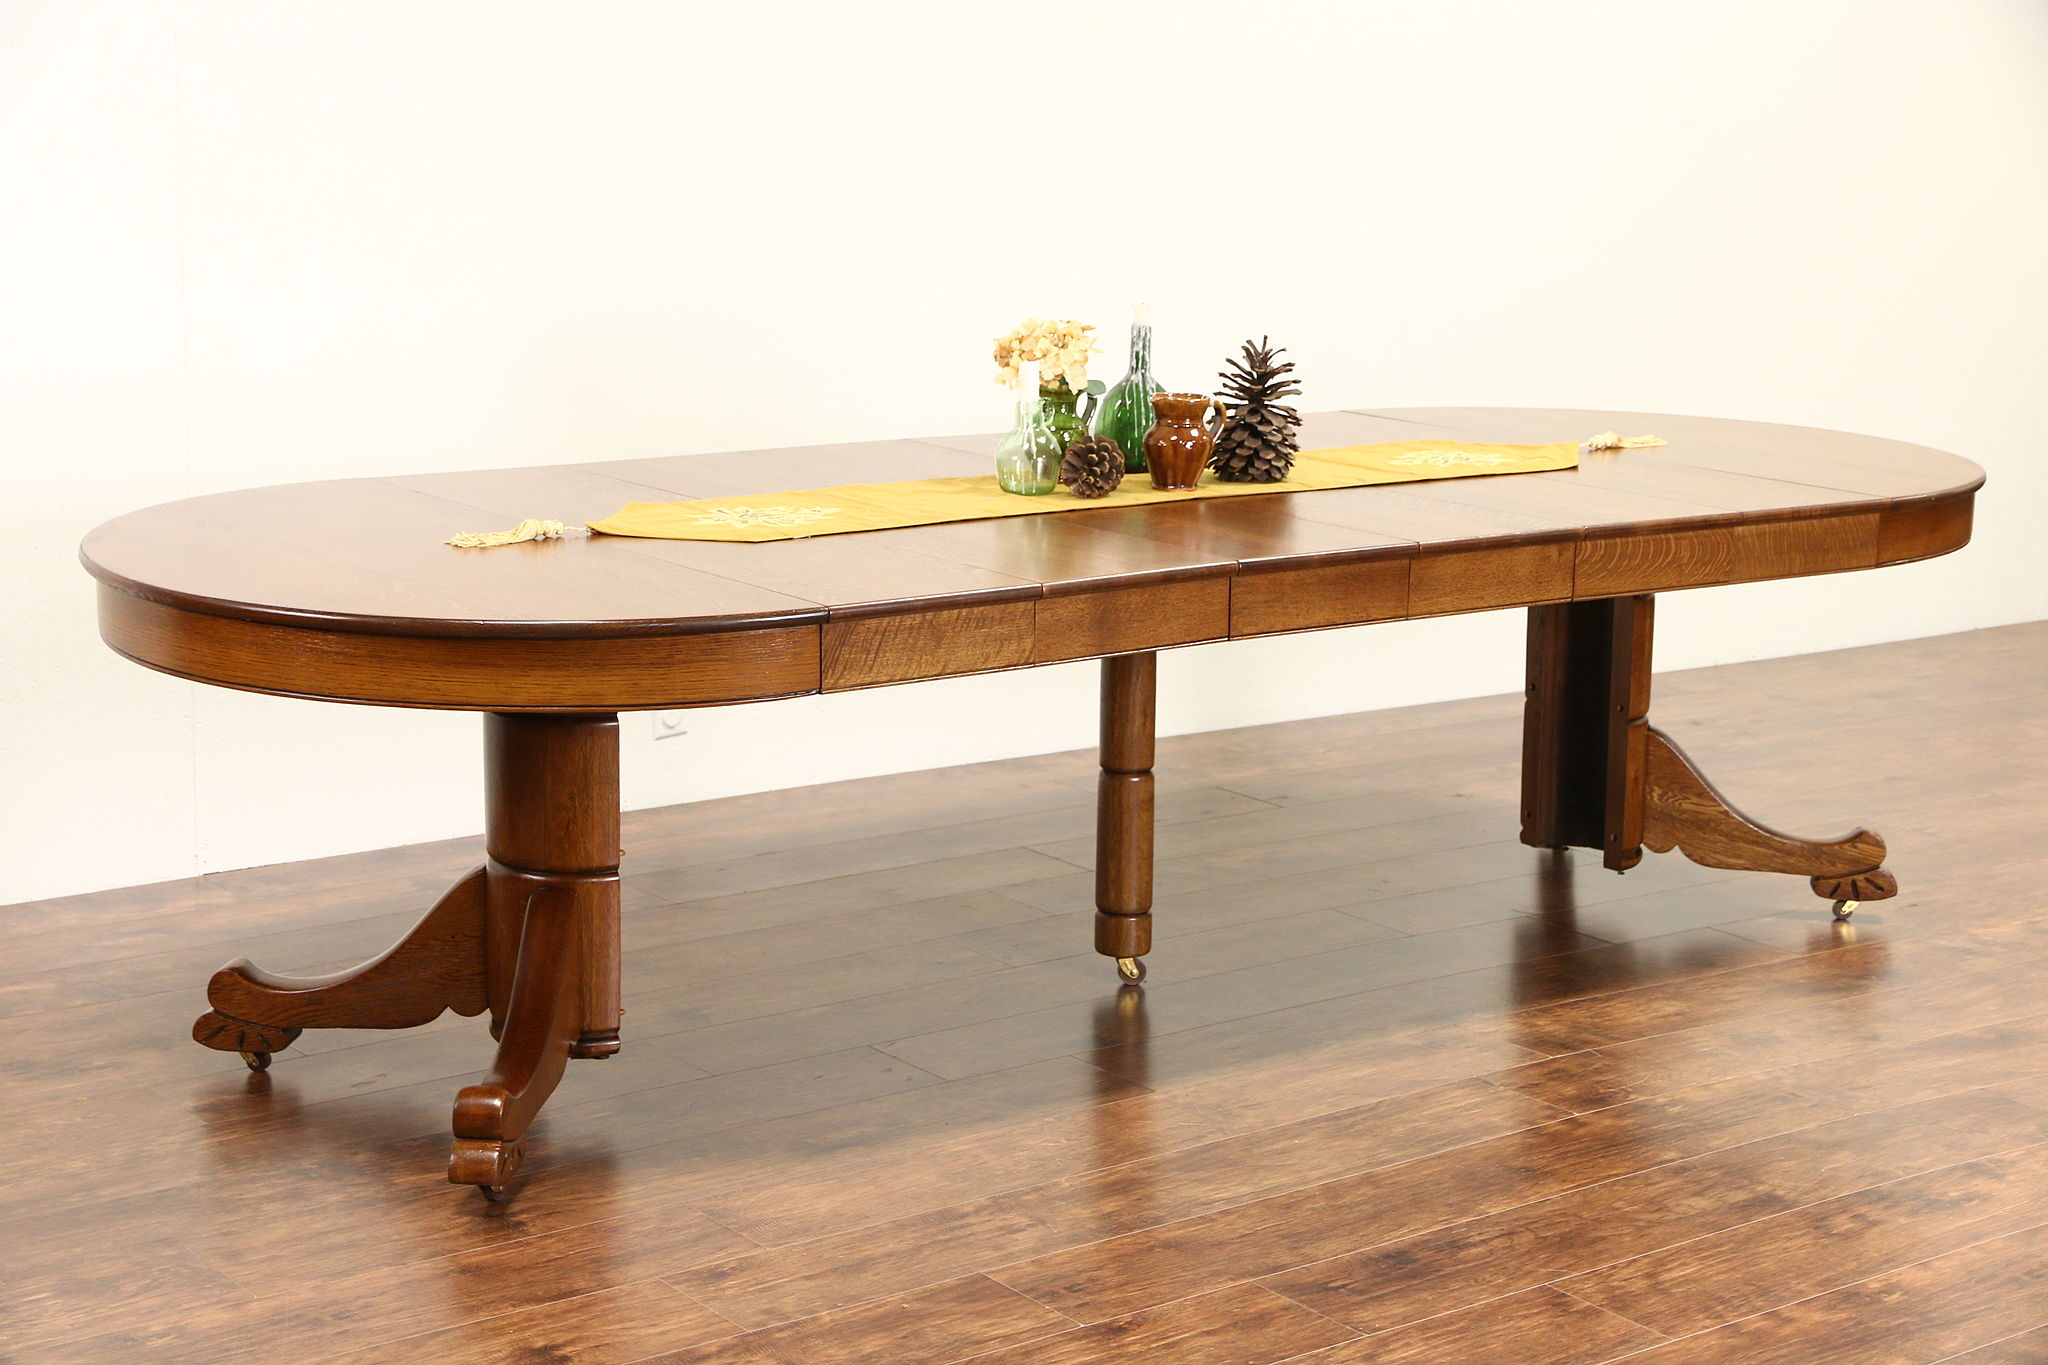 Round Oak Dining Table Oak 4 Round 1910 Antique Carved Pedestal Dining Table 6 Leaves Extends 10